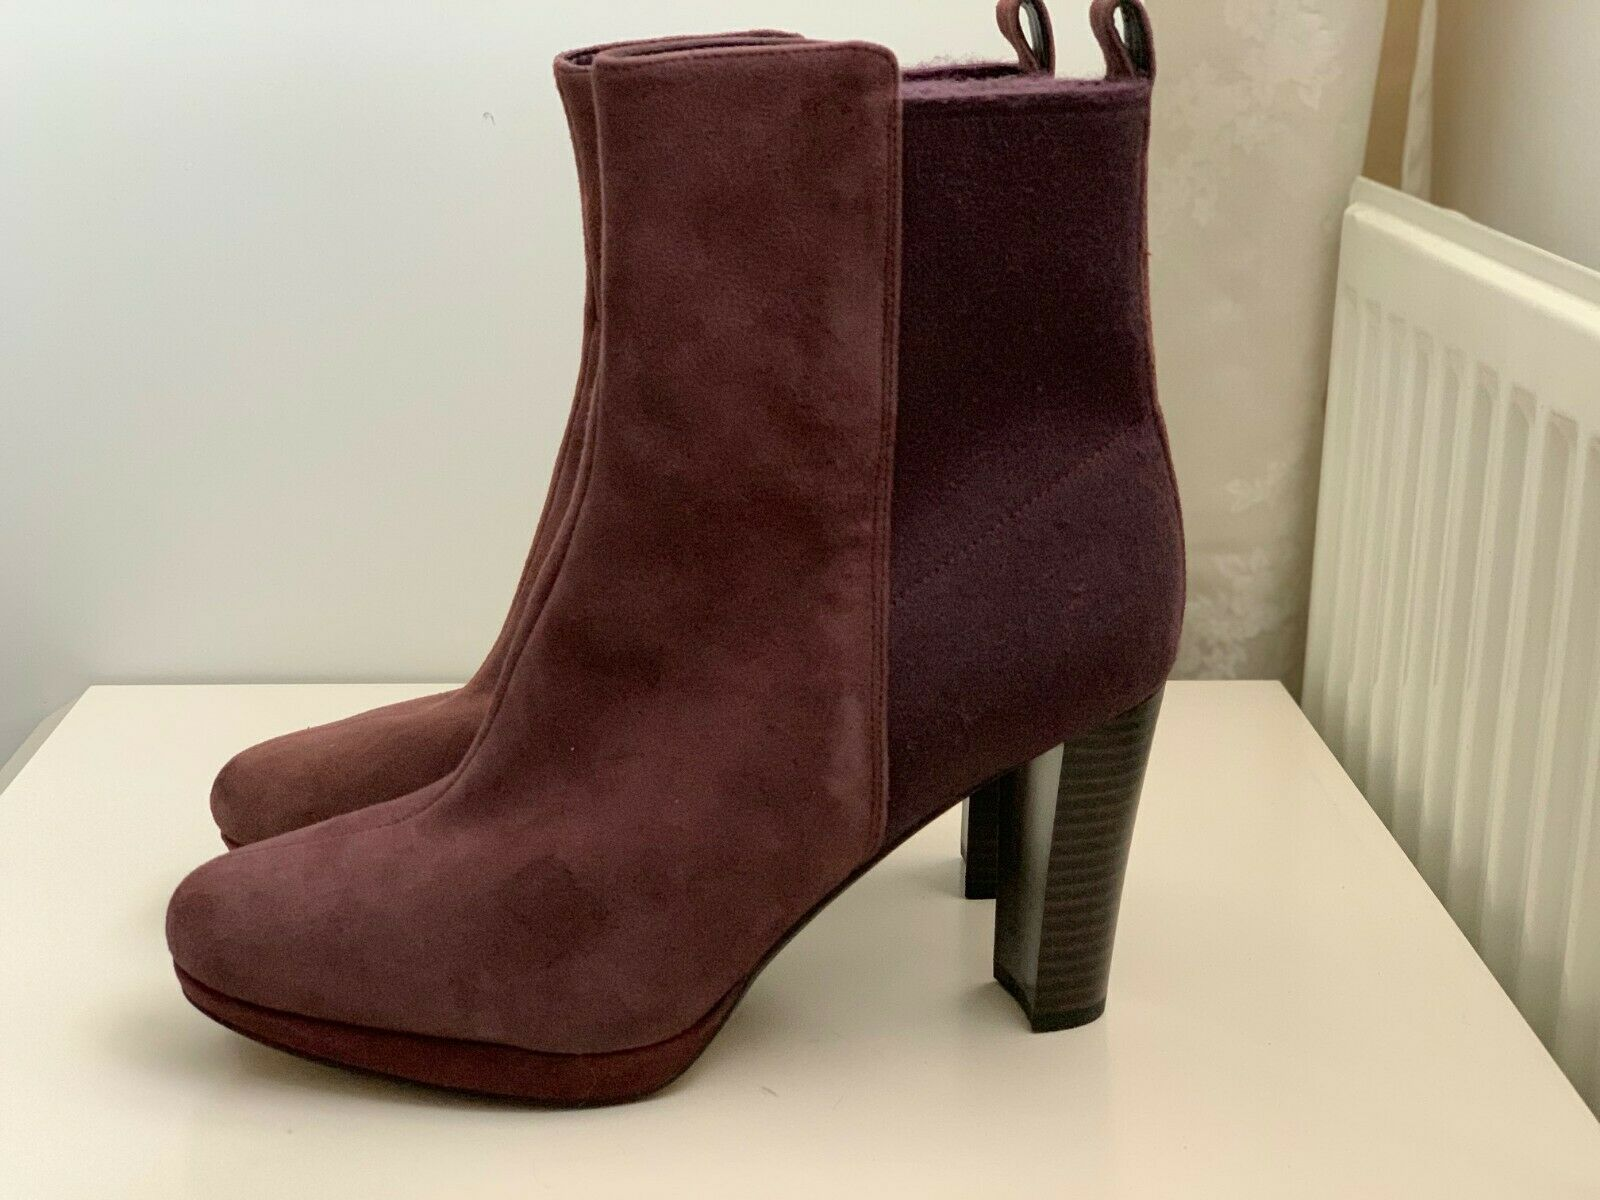 NEW Clarks Women's Kendra Porter Ankle Boots - Aubergine Suede - Fit D-E